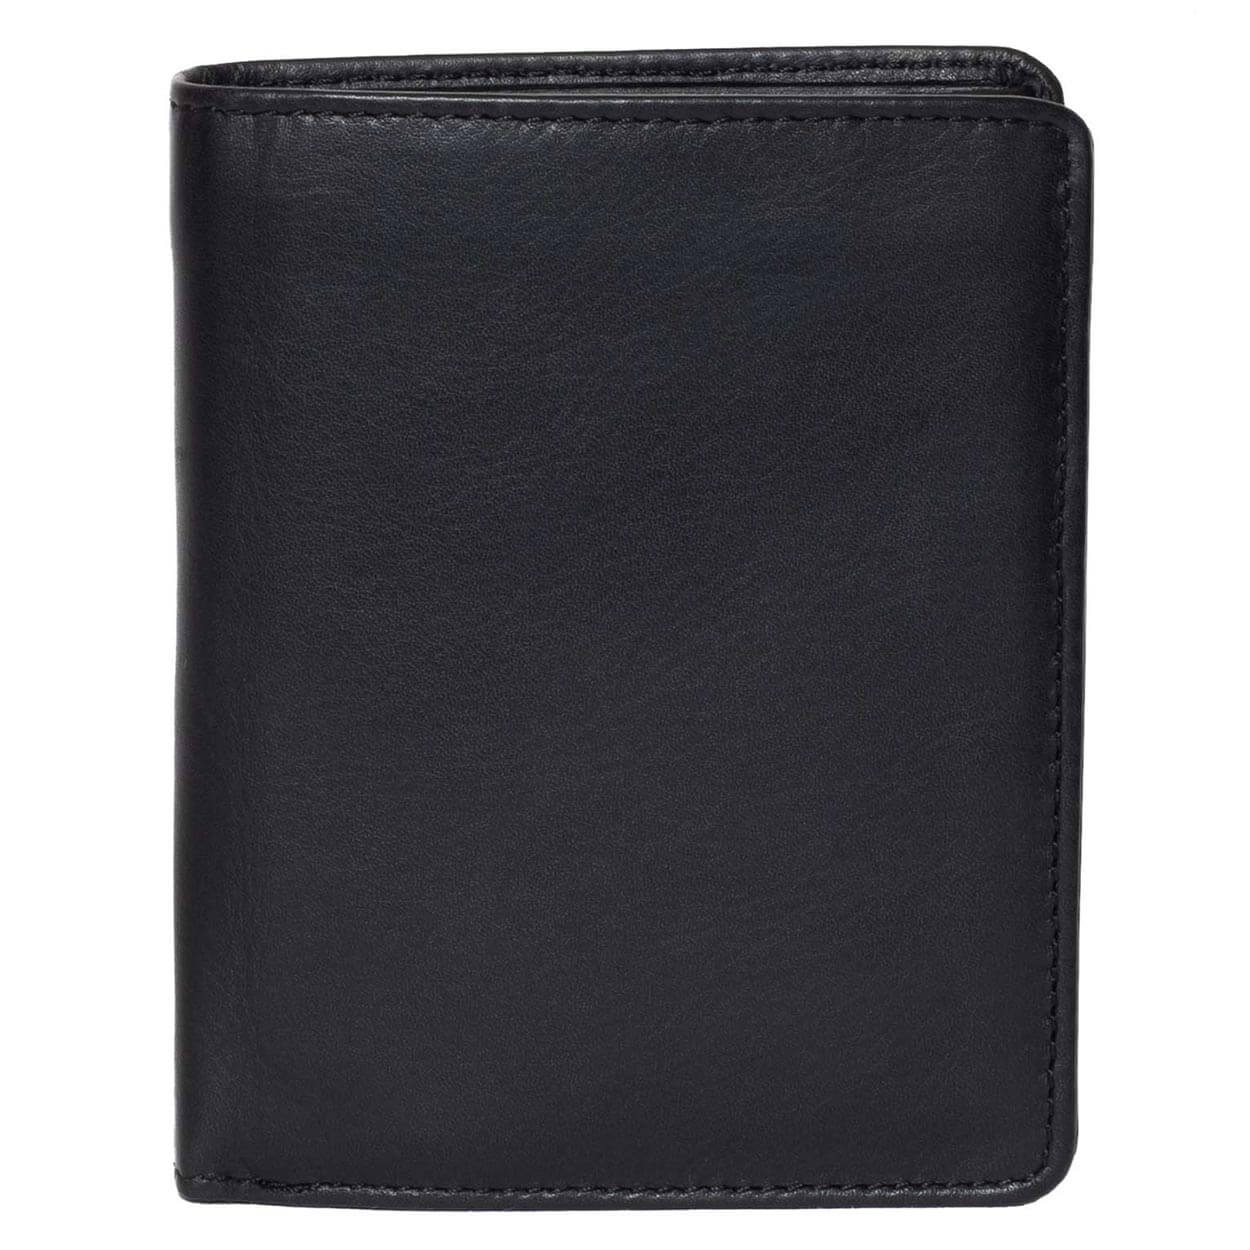 Men's Large Leather Wallet RFID Vertical 2.0 Black - Front View